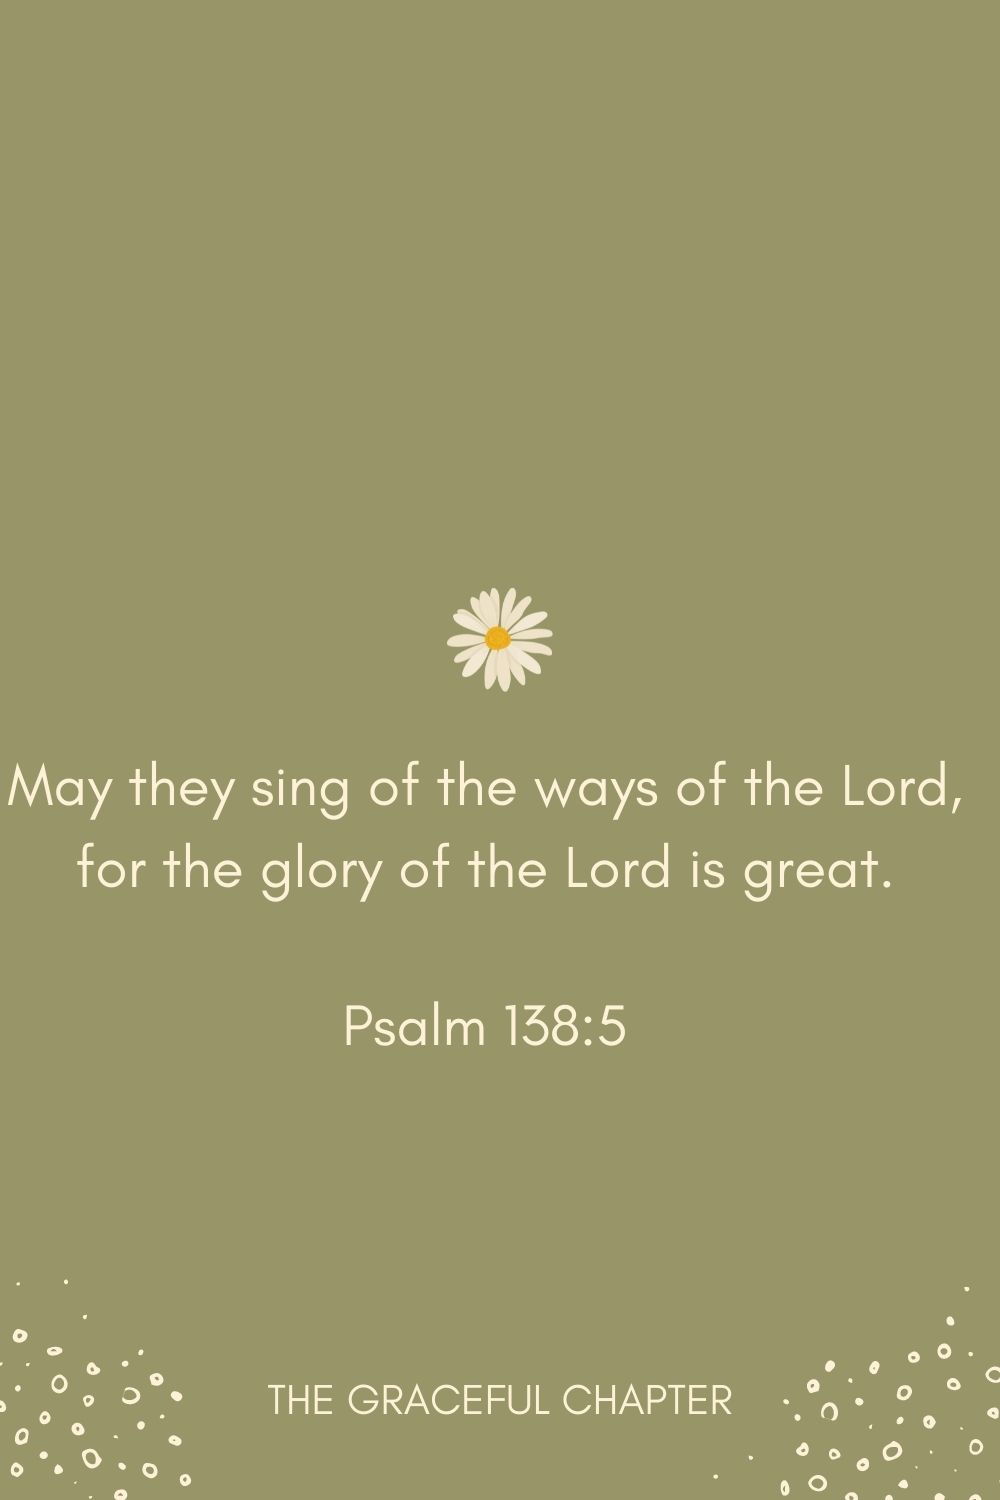 May they sing of the ways of the Lord, for the glory of the Lord is great. Psalm 138:5